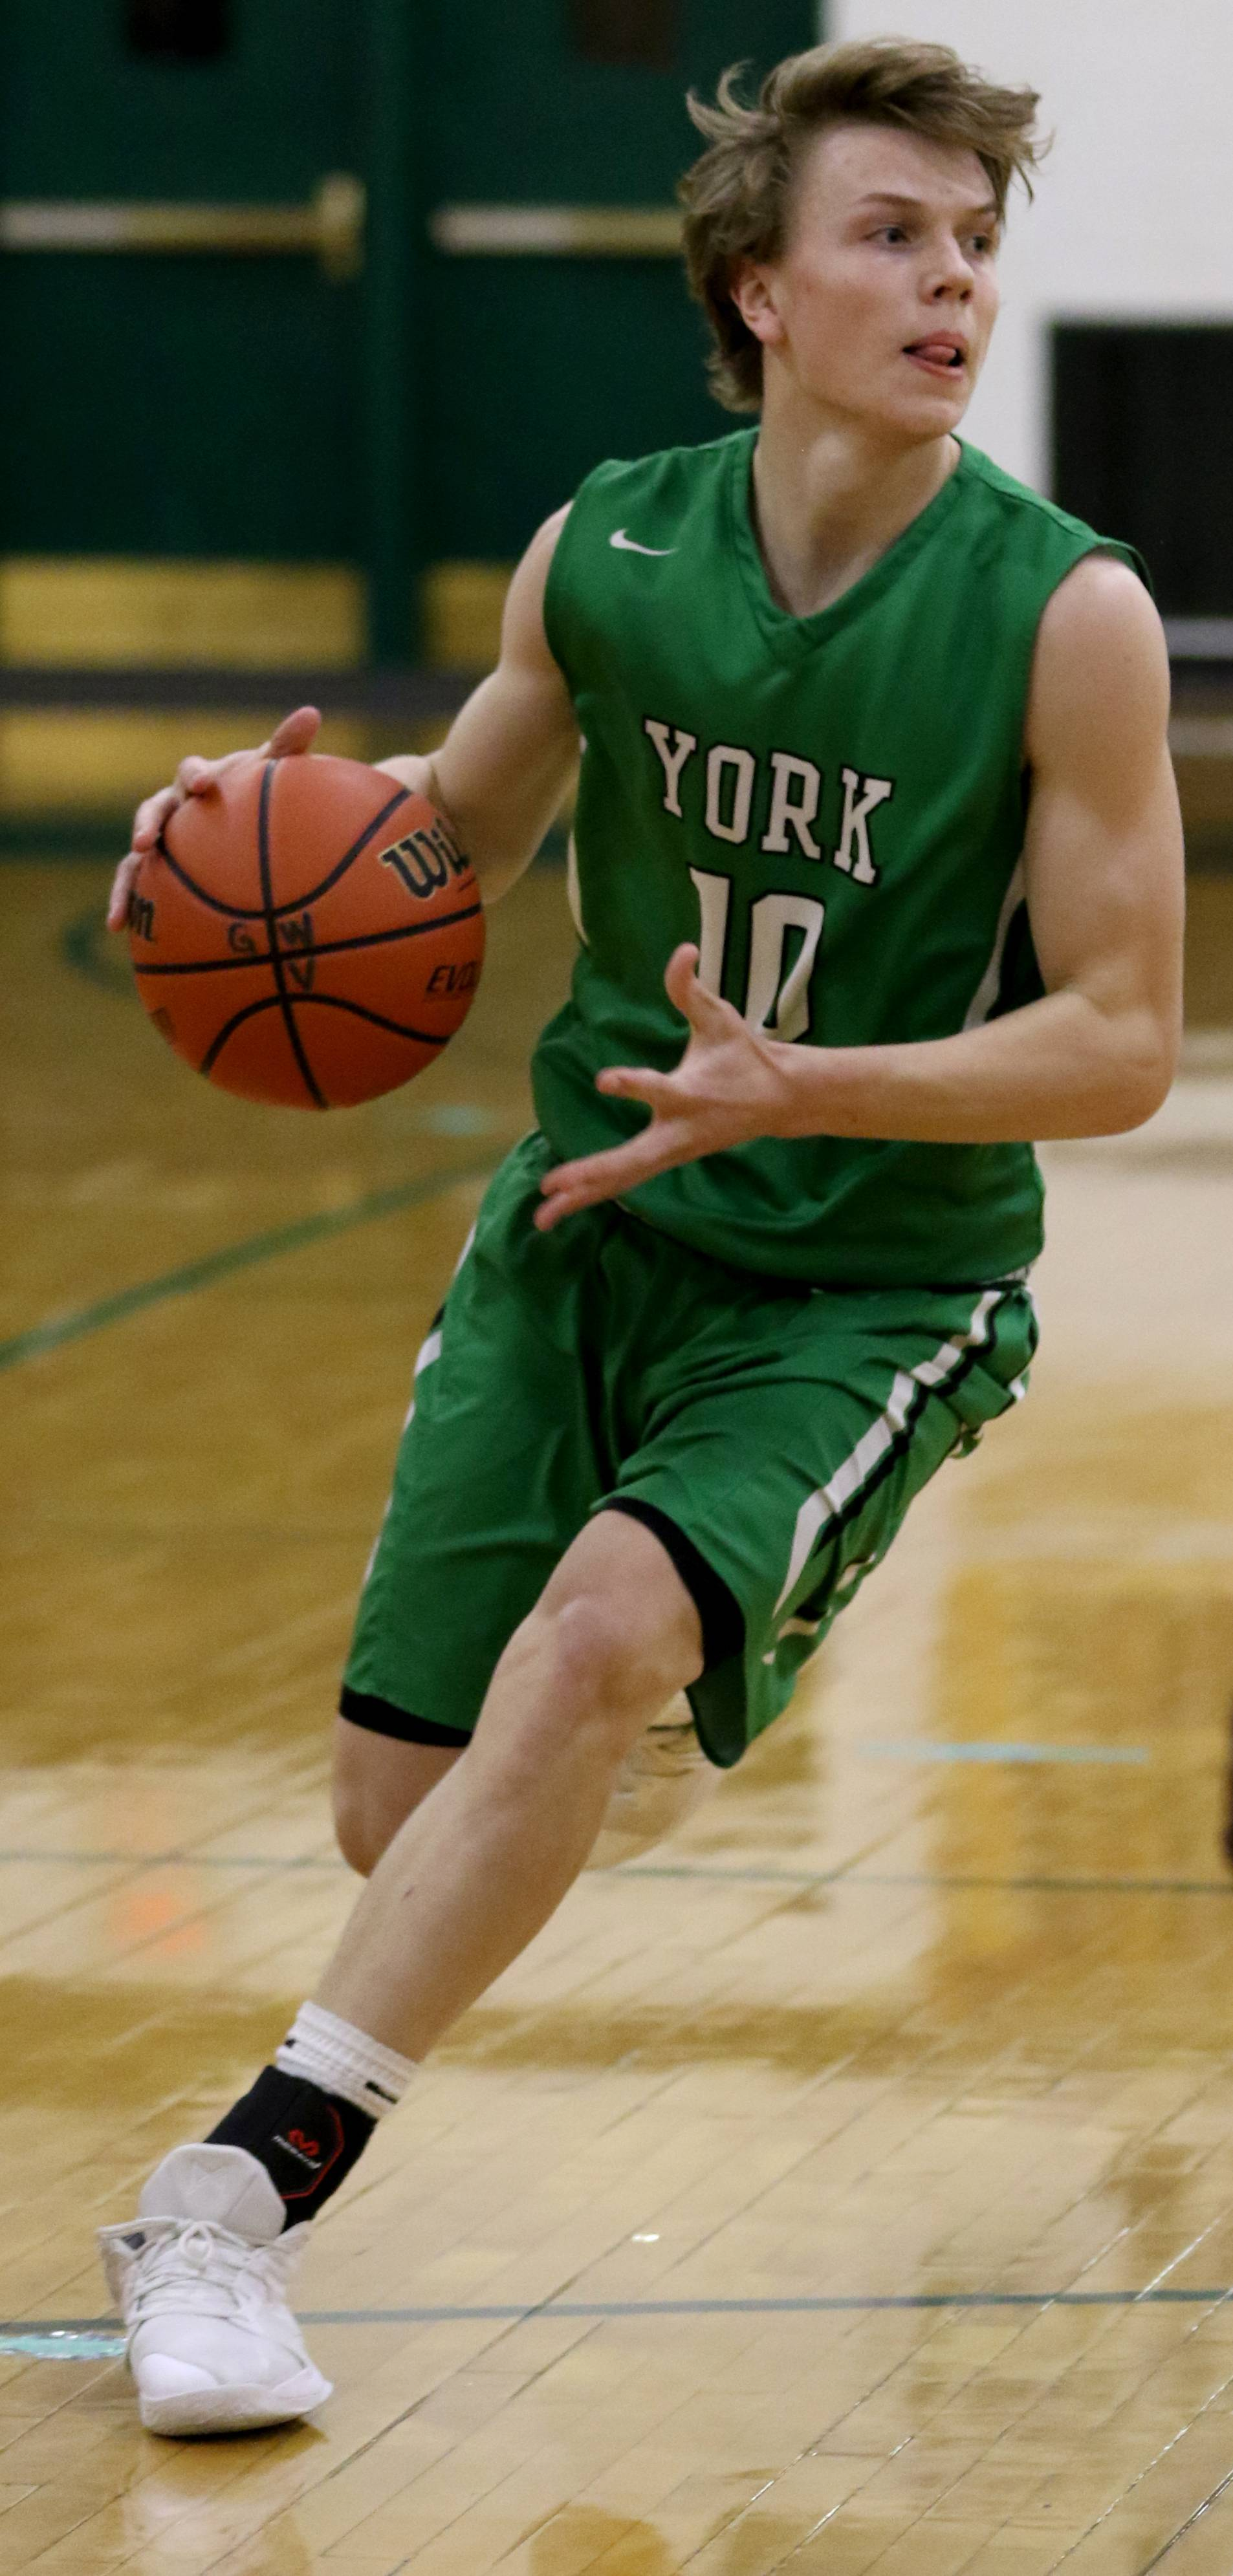 York's Nathan Shockey during varsity boys basketball at Fred L. Biester Gymnasium on the campus of Glenbard West Tuesday night.